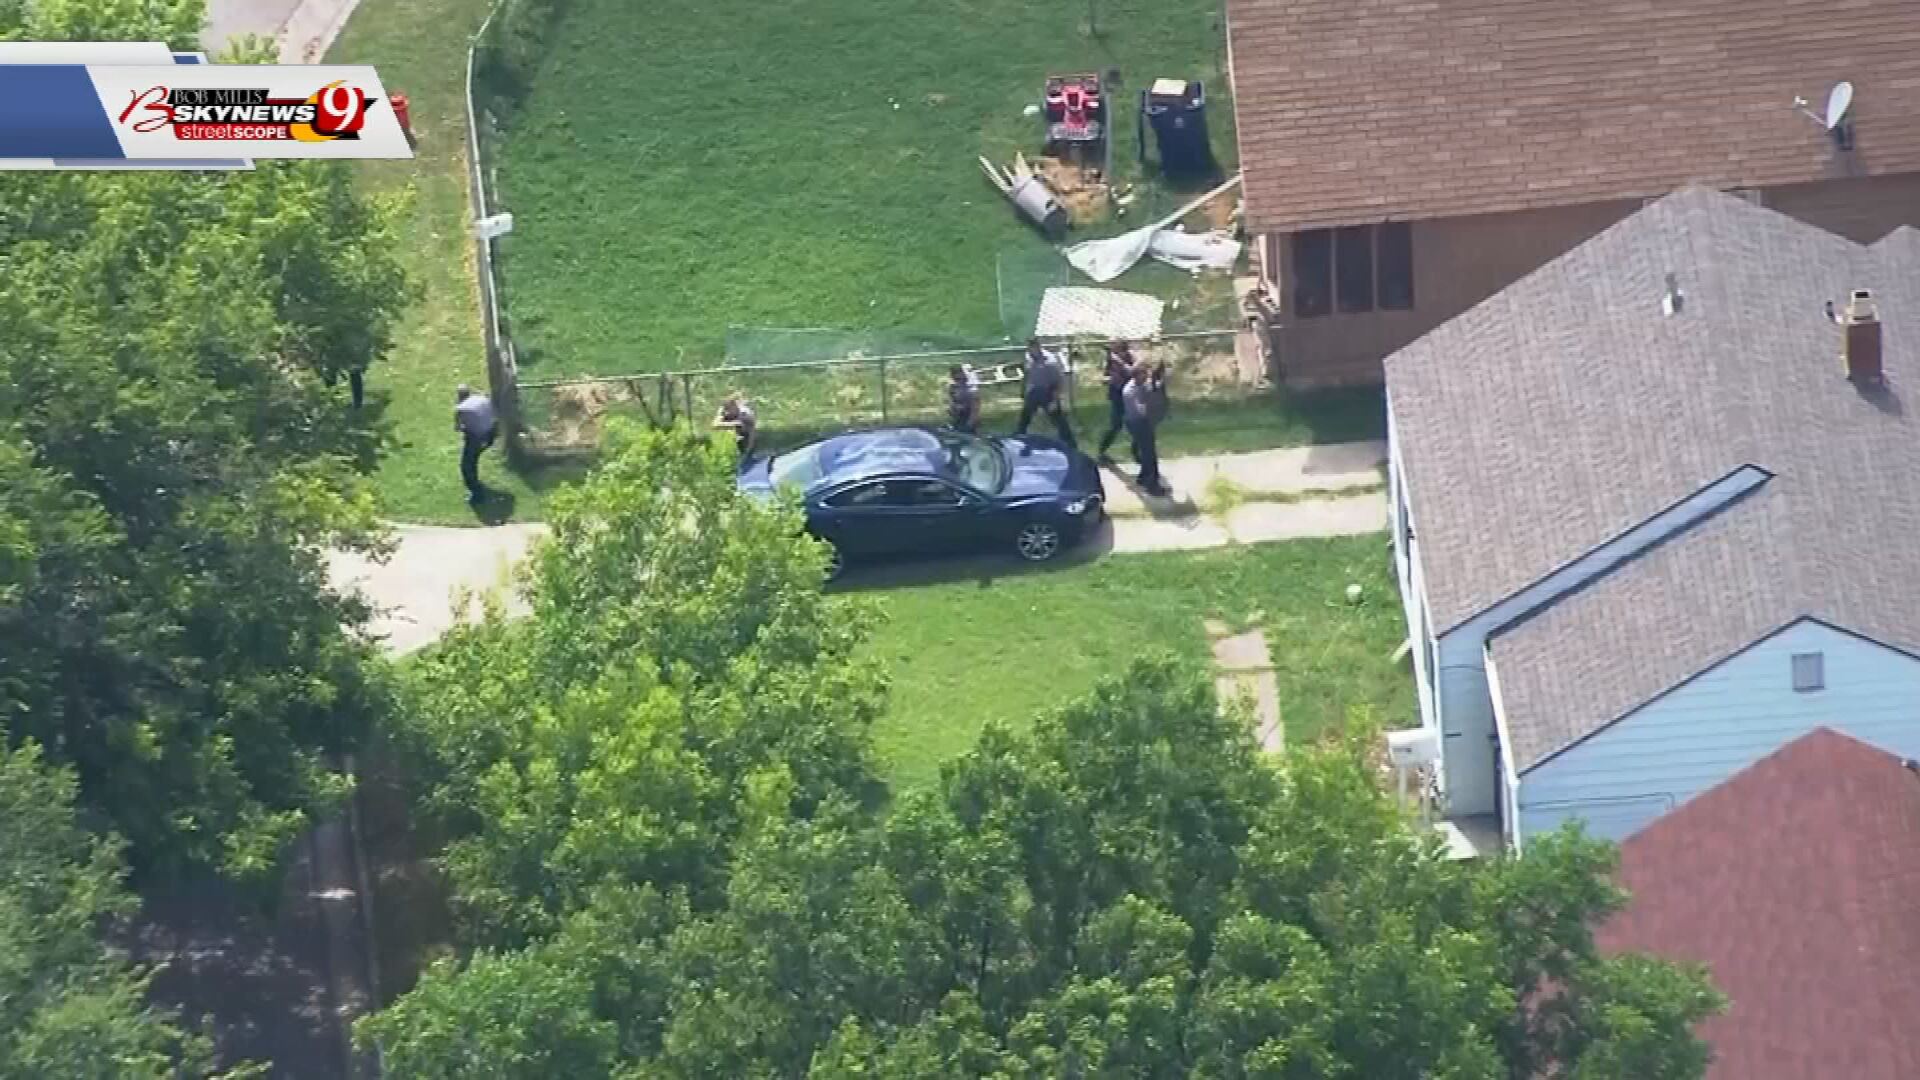 1 Person Dead, 1 Officer Hit After Long Standoff In OKC